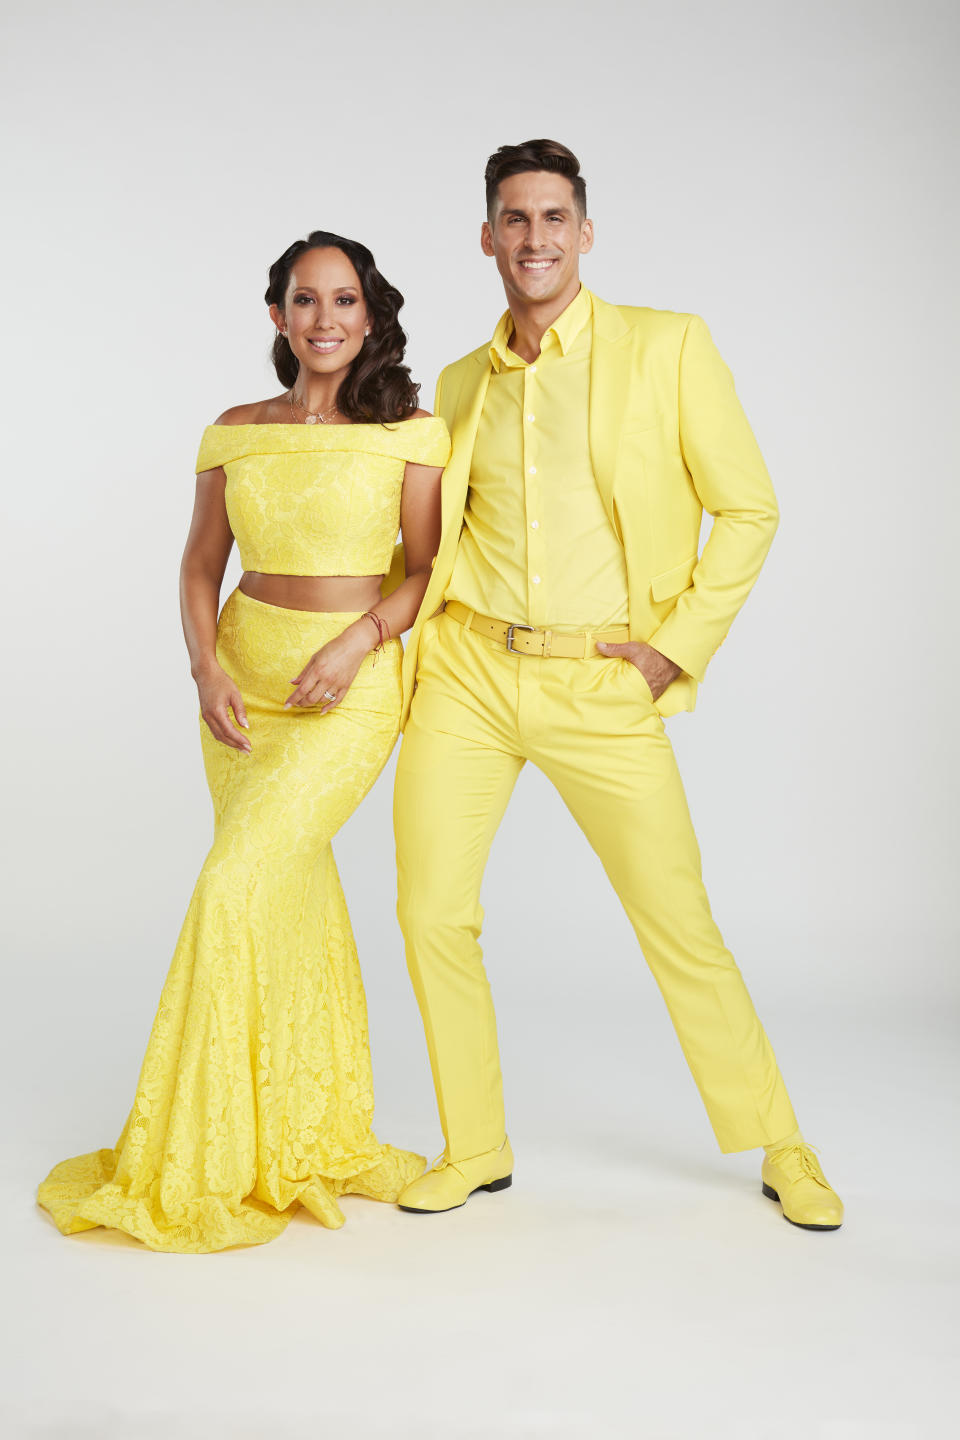 DANCING WITH THE STARS - ABC's